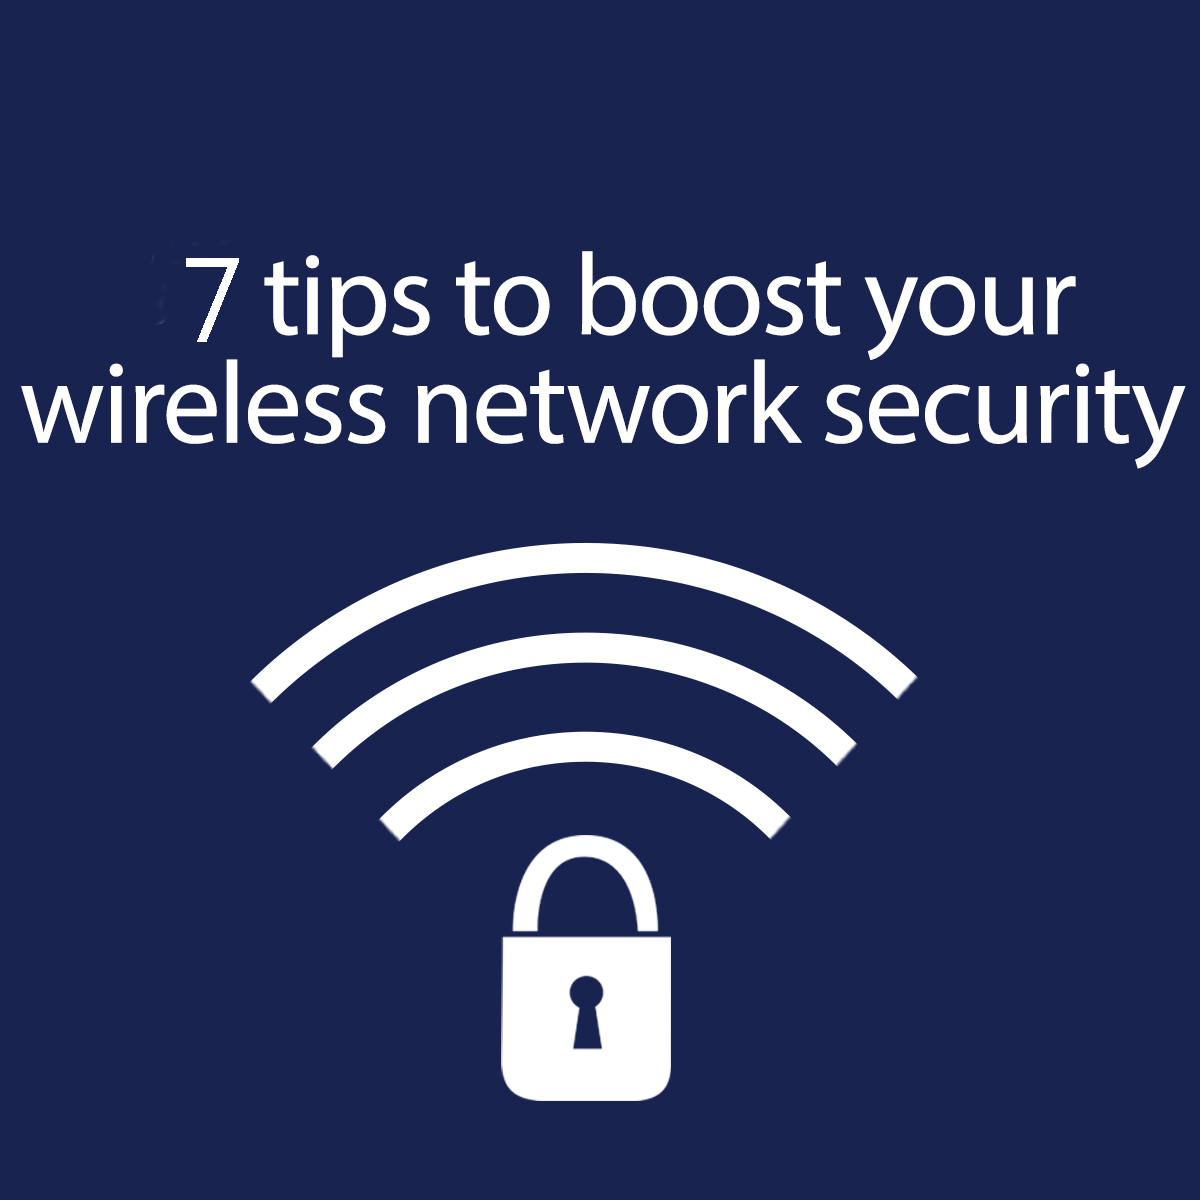 Network Security Tips for Small Businesses - Image 1